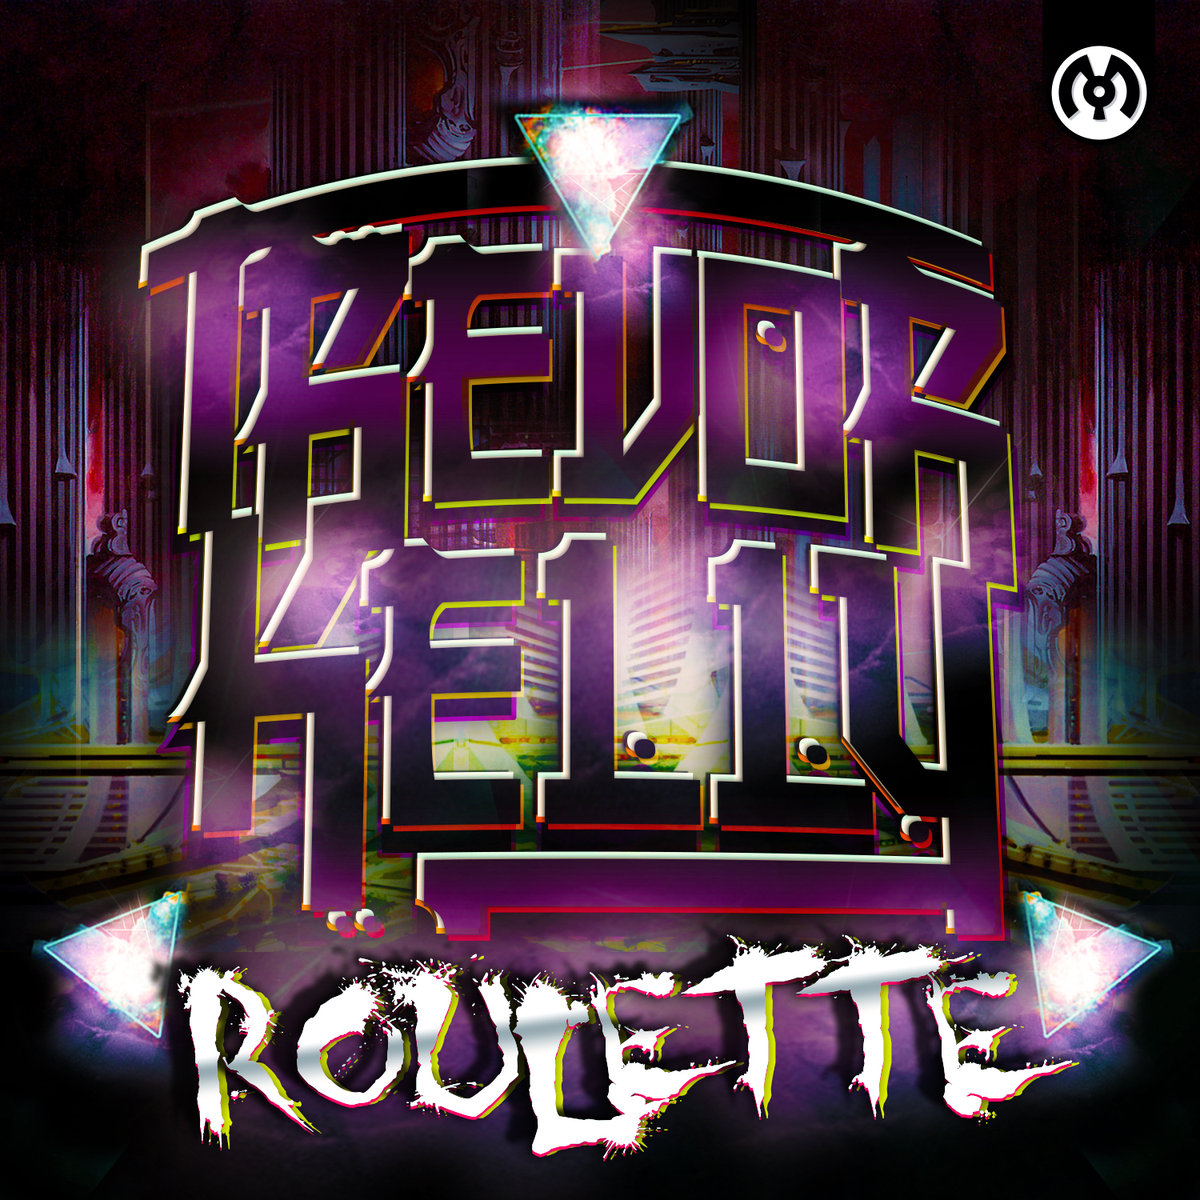 Trevor Kelly - Re-Rinsed @ 'Roulette' album (electronic, dubstep)